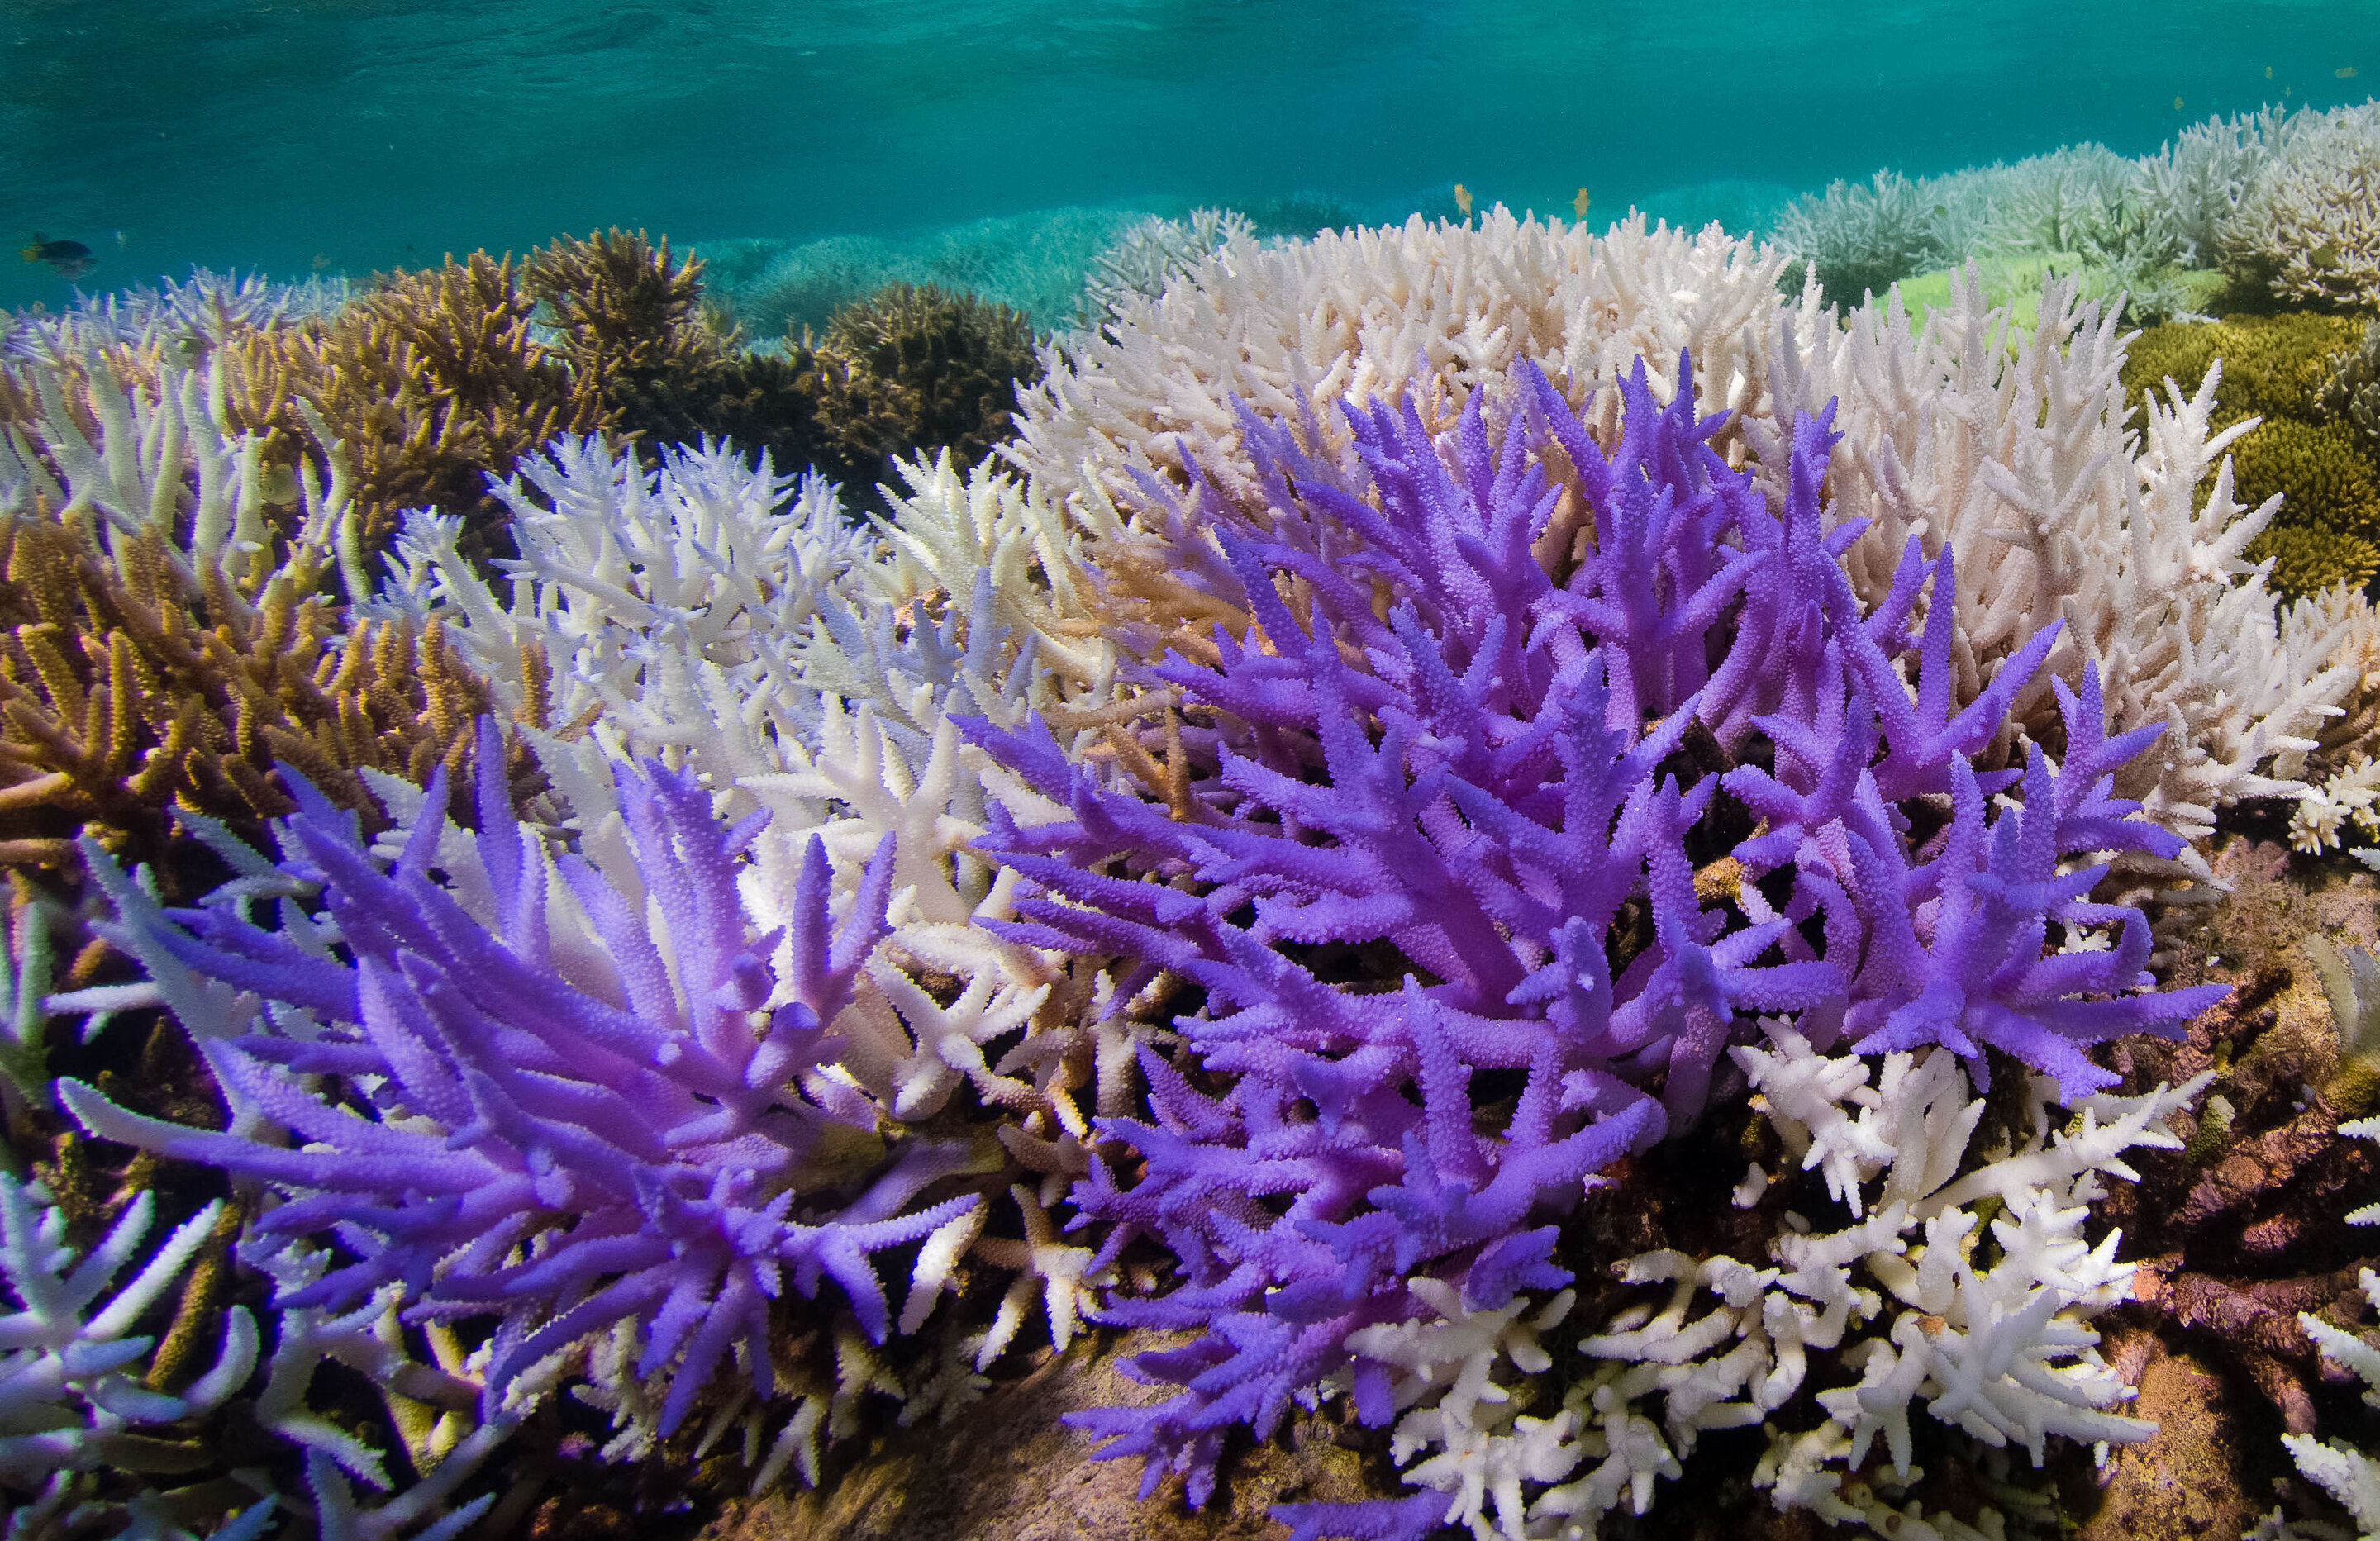 Mysterious glowing coral reefs are fighting to recover